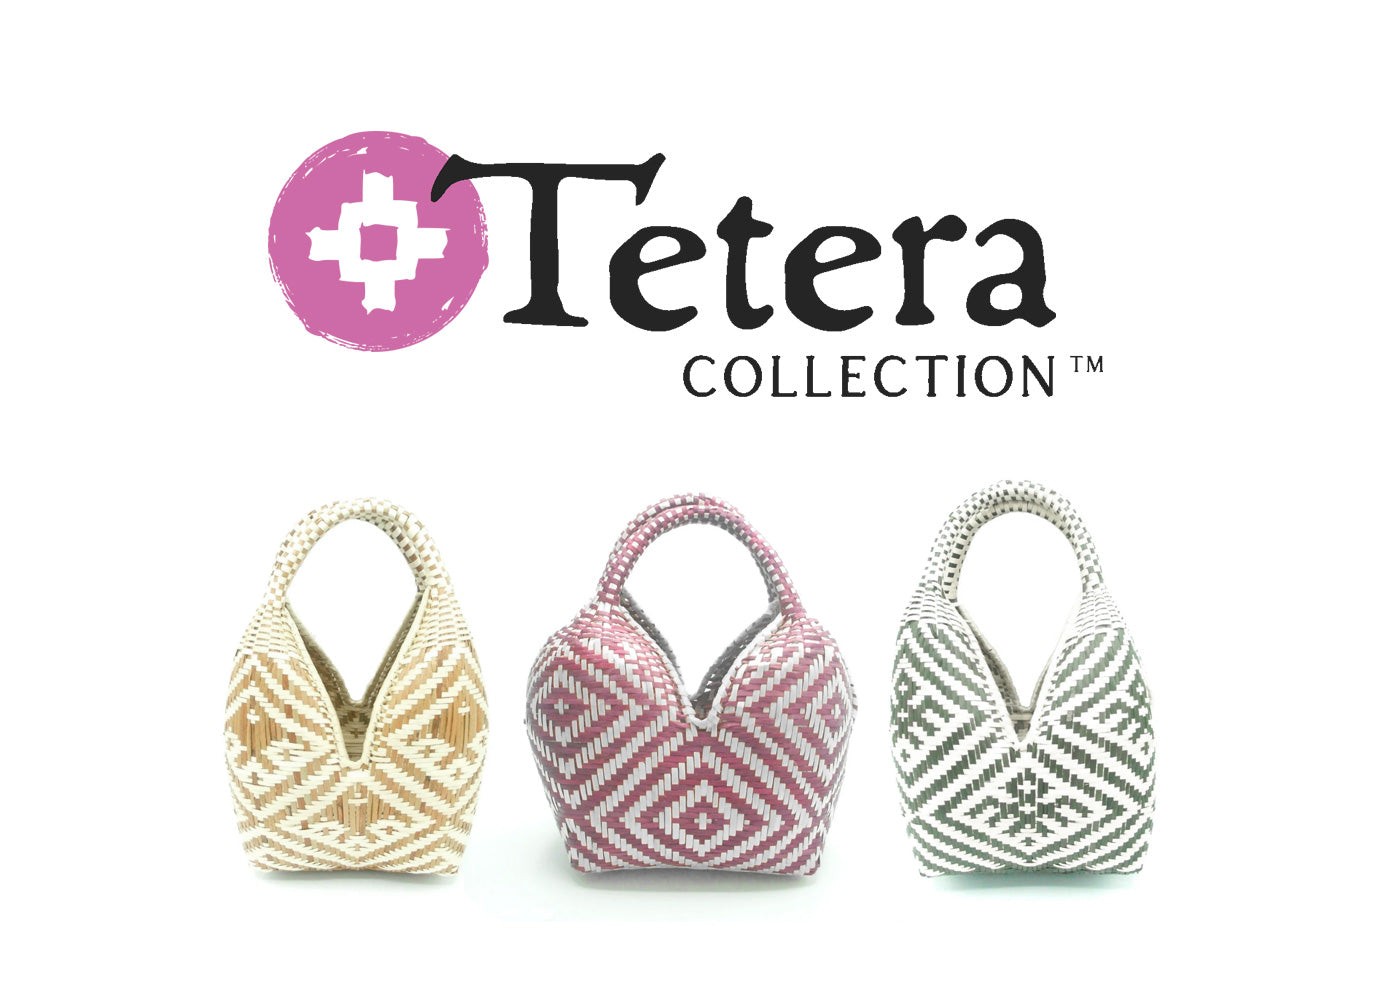 Tetera Collection™ by D'cocora